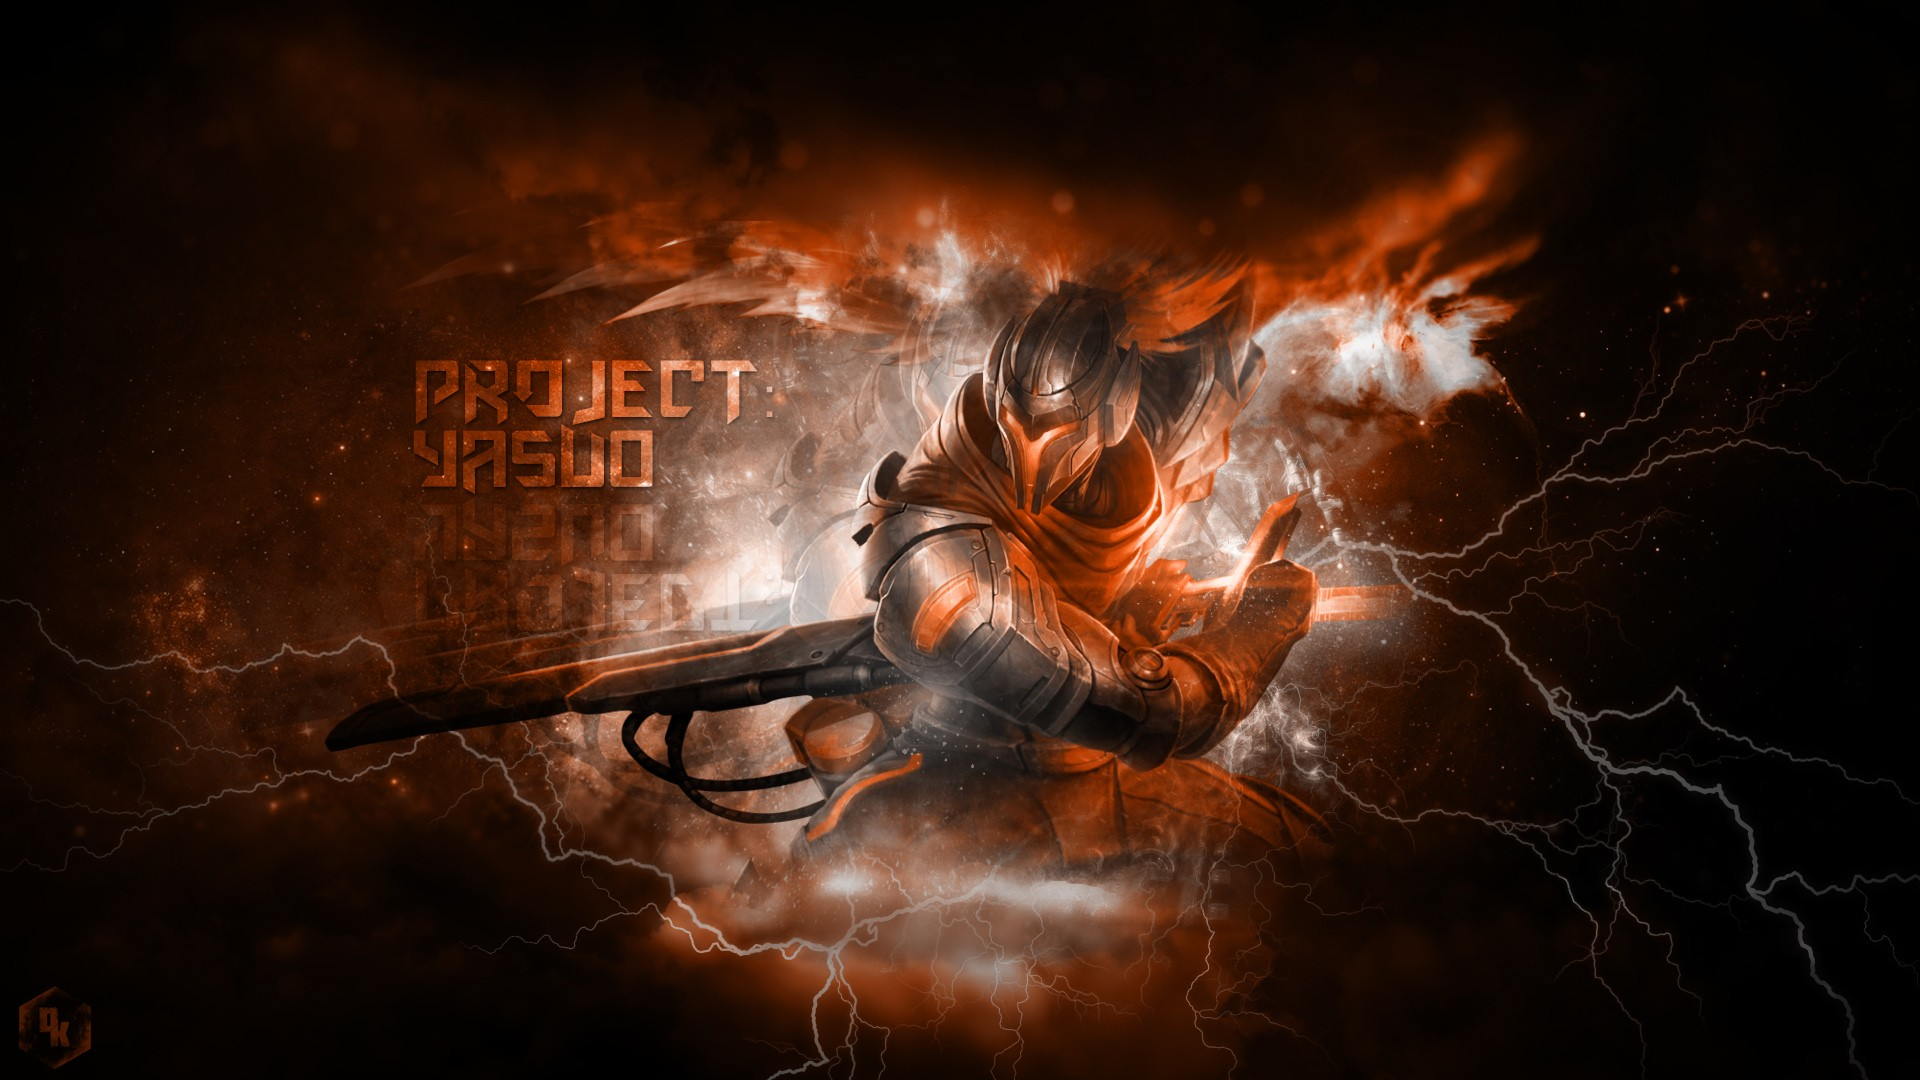 Project Yasuo Wallpapers Fan Arts League Of Legends Lol Stats